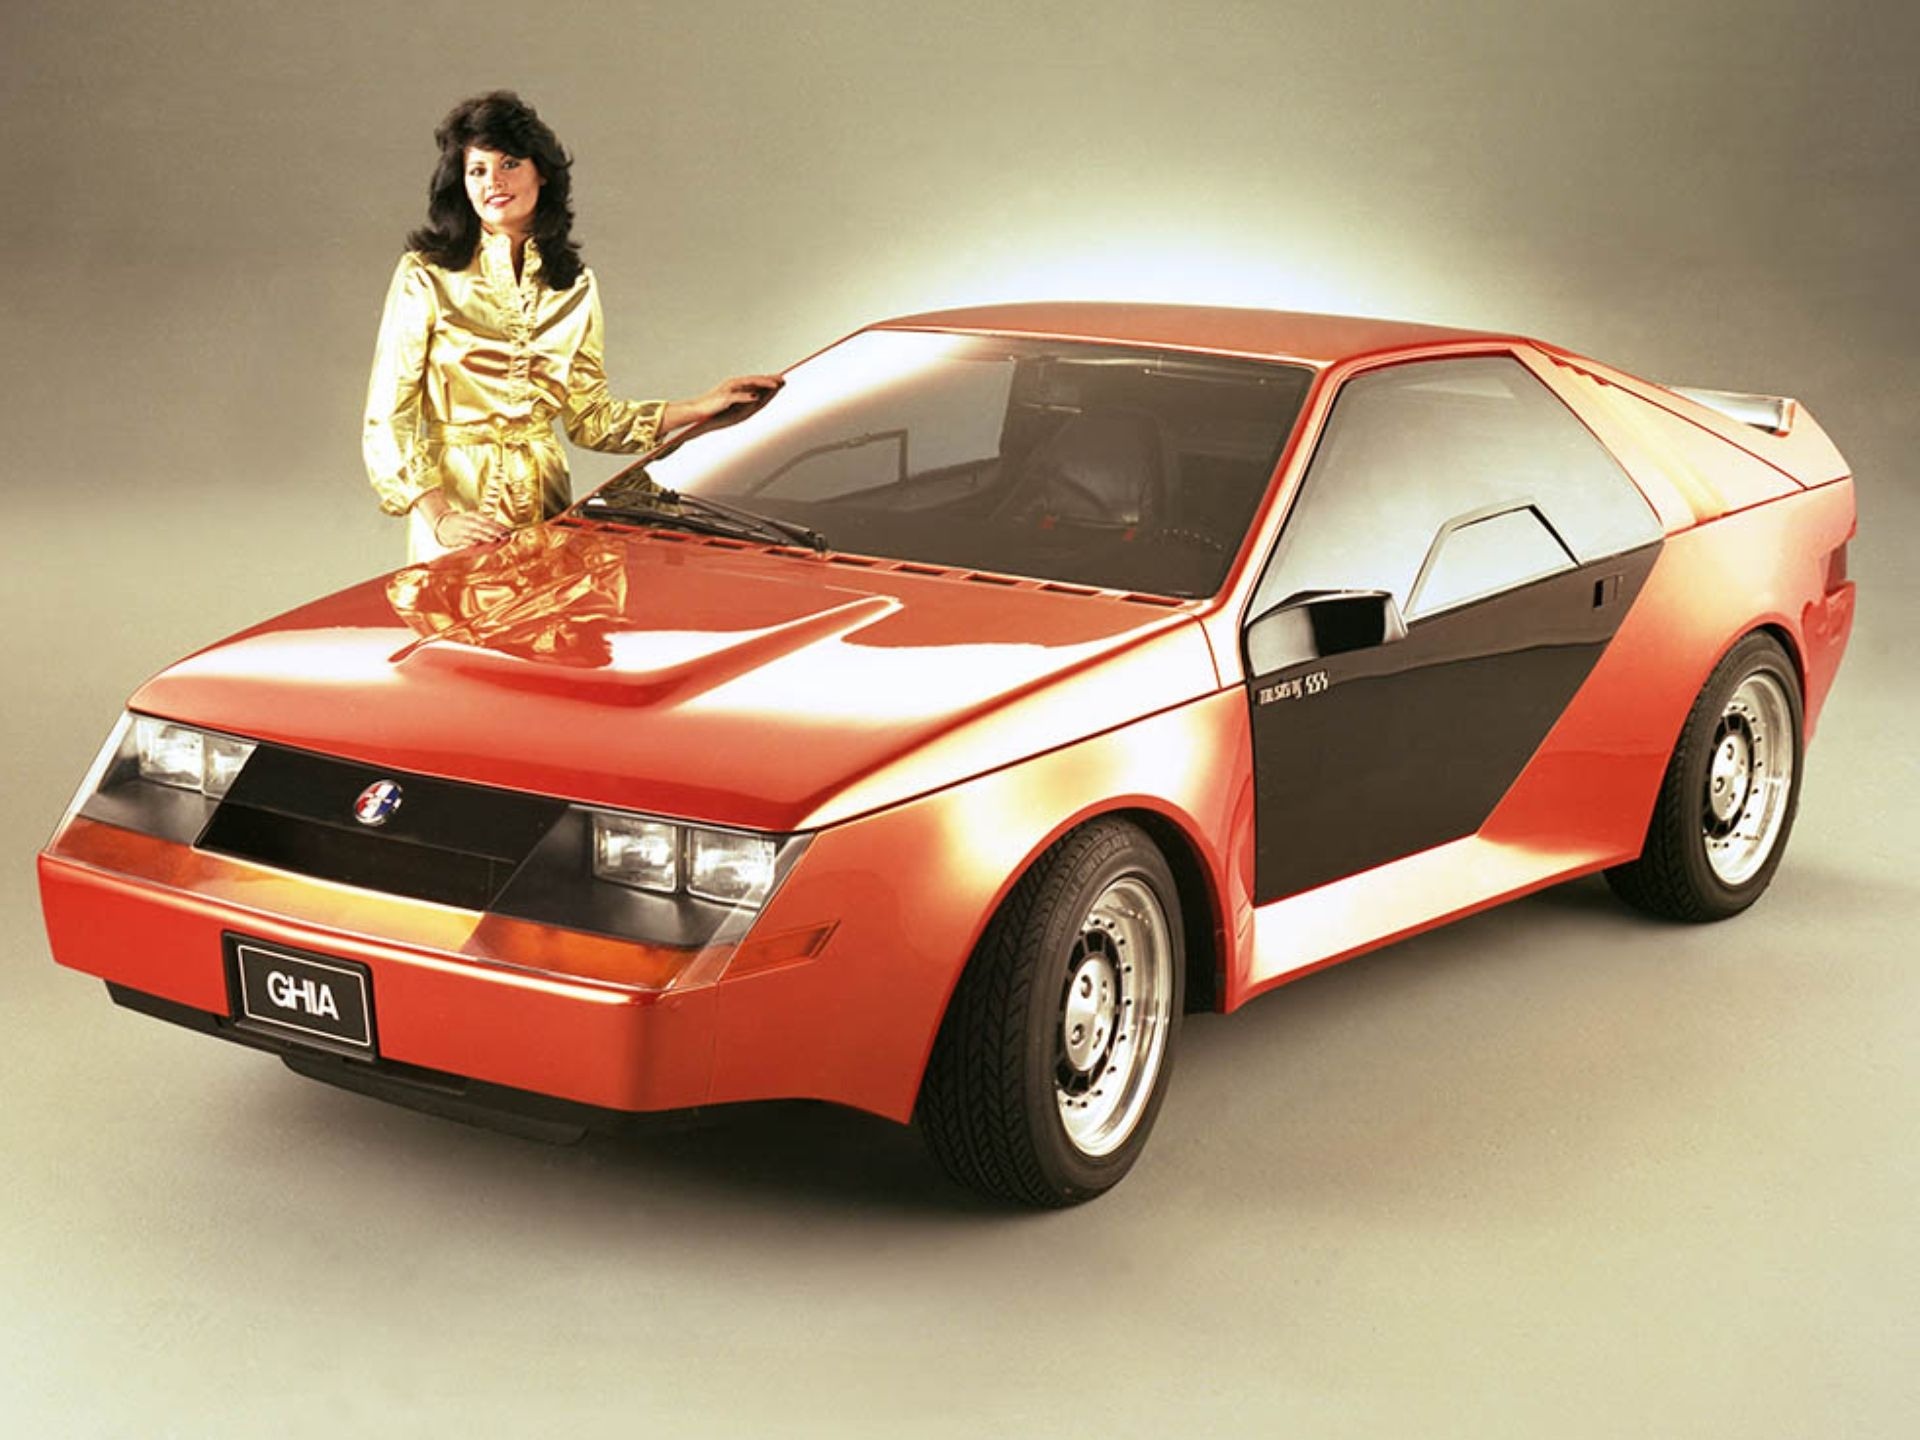 1980г. Mustang RSX Concept, фото Ford Mustang